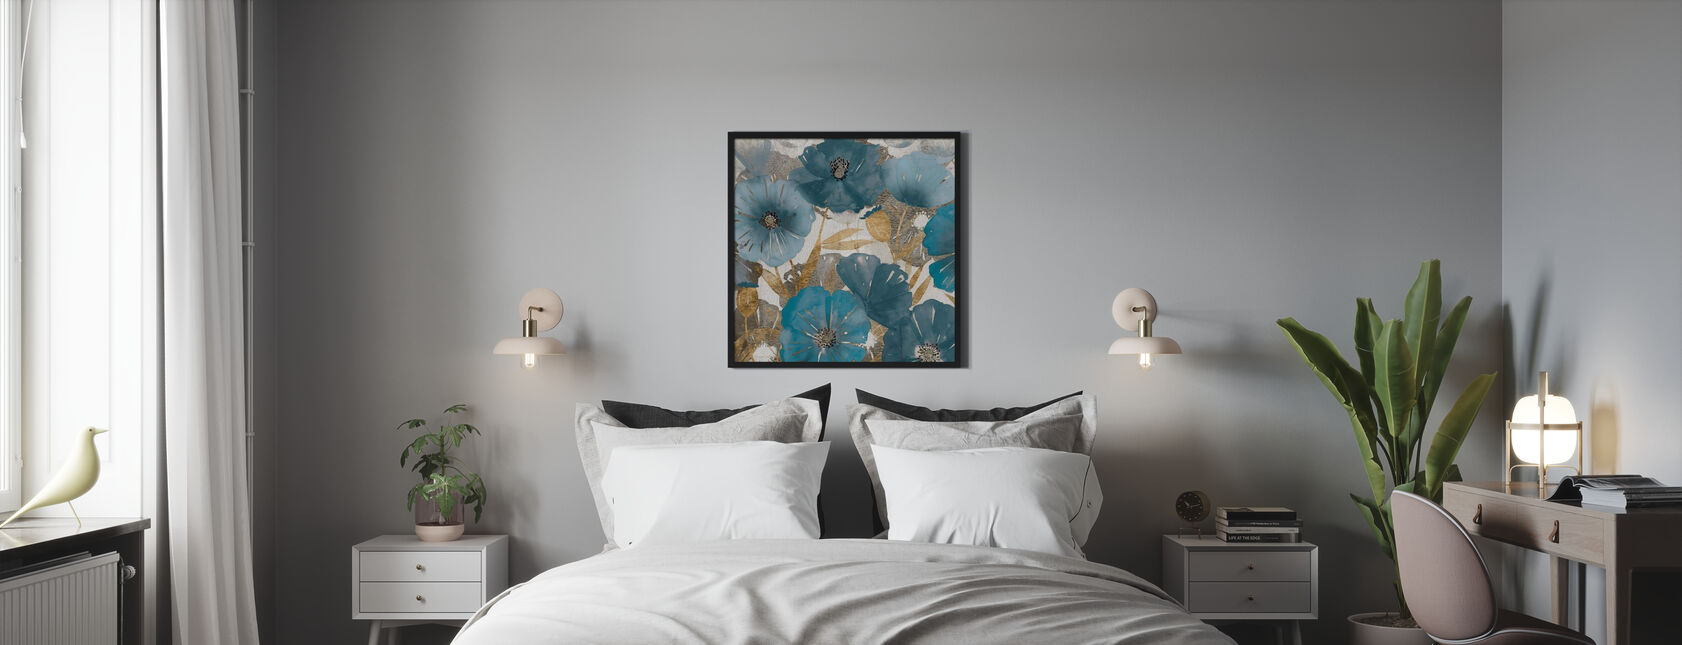 Blue and Gold Poppies - Poster - Bedroom